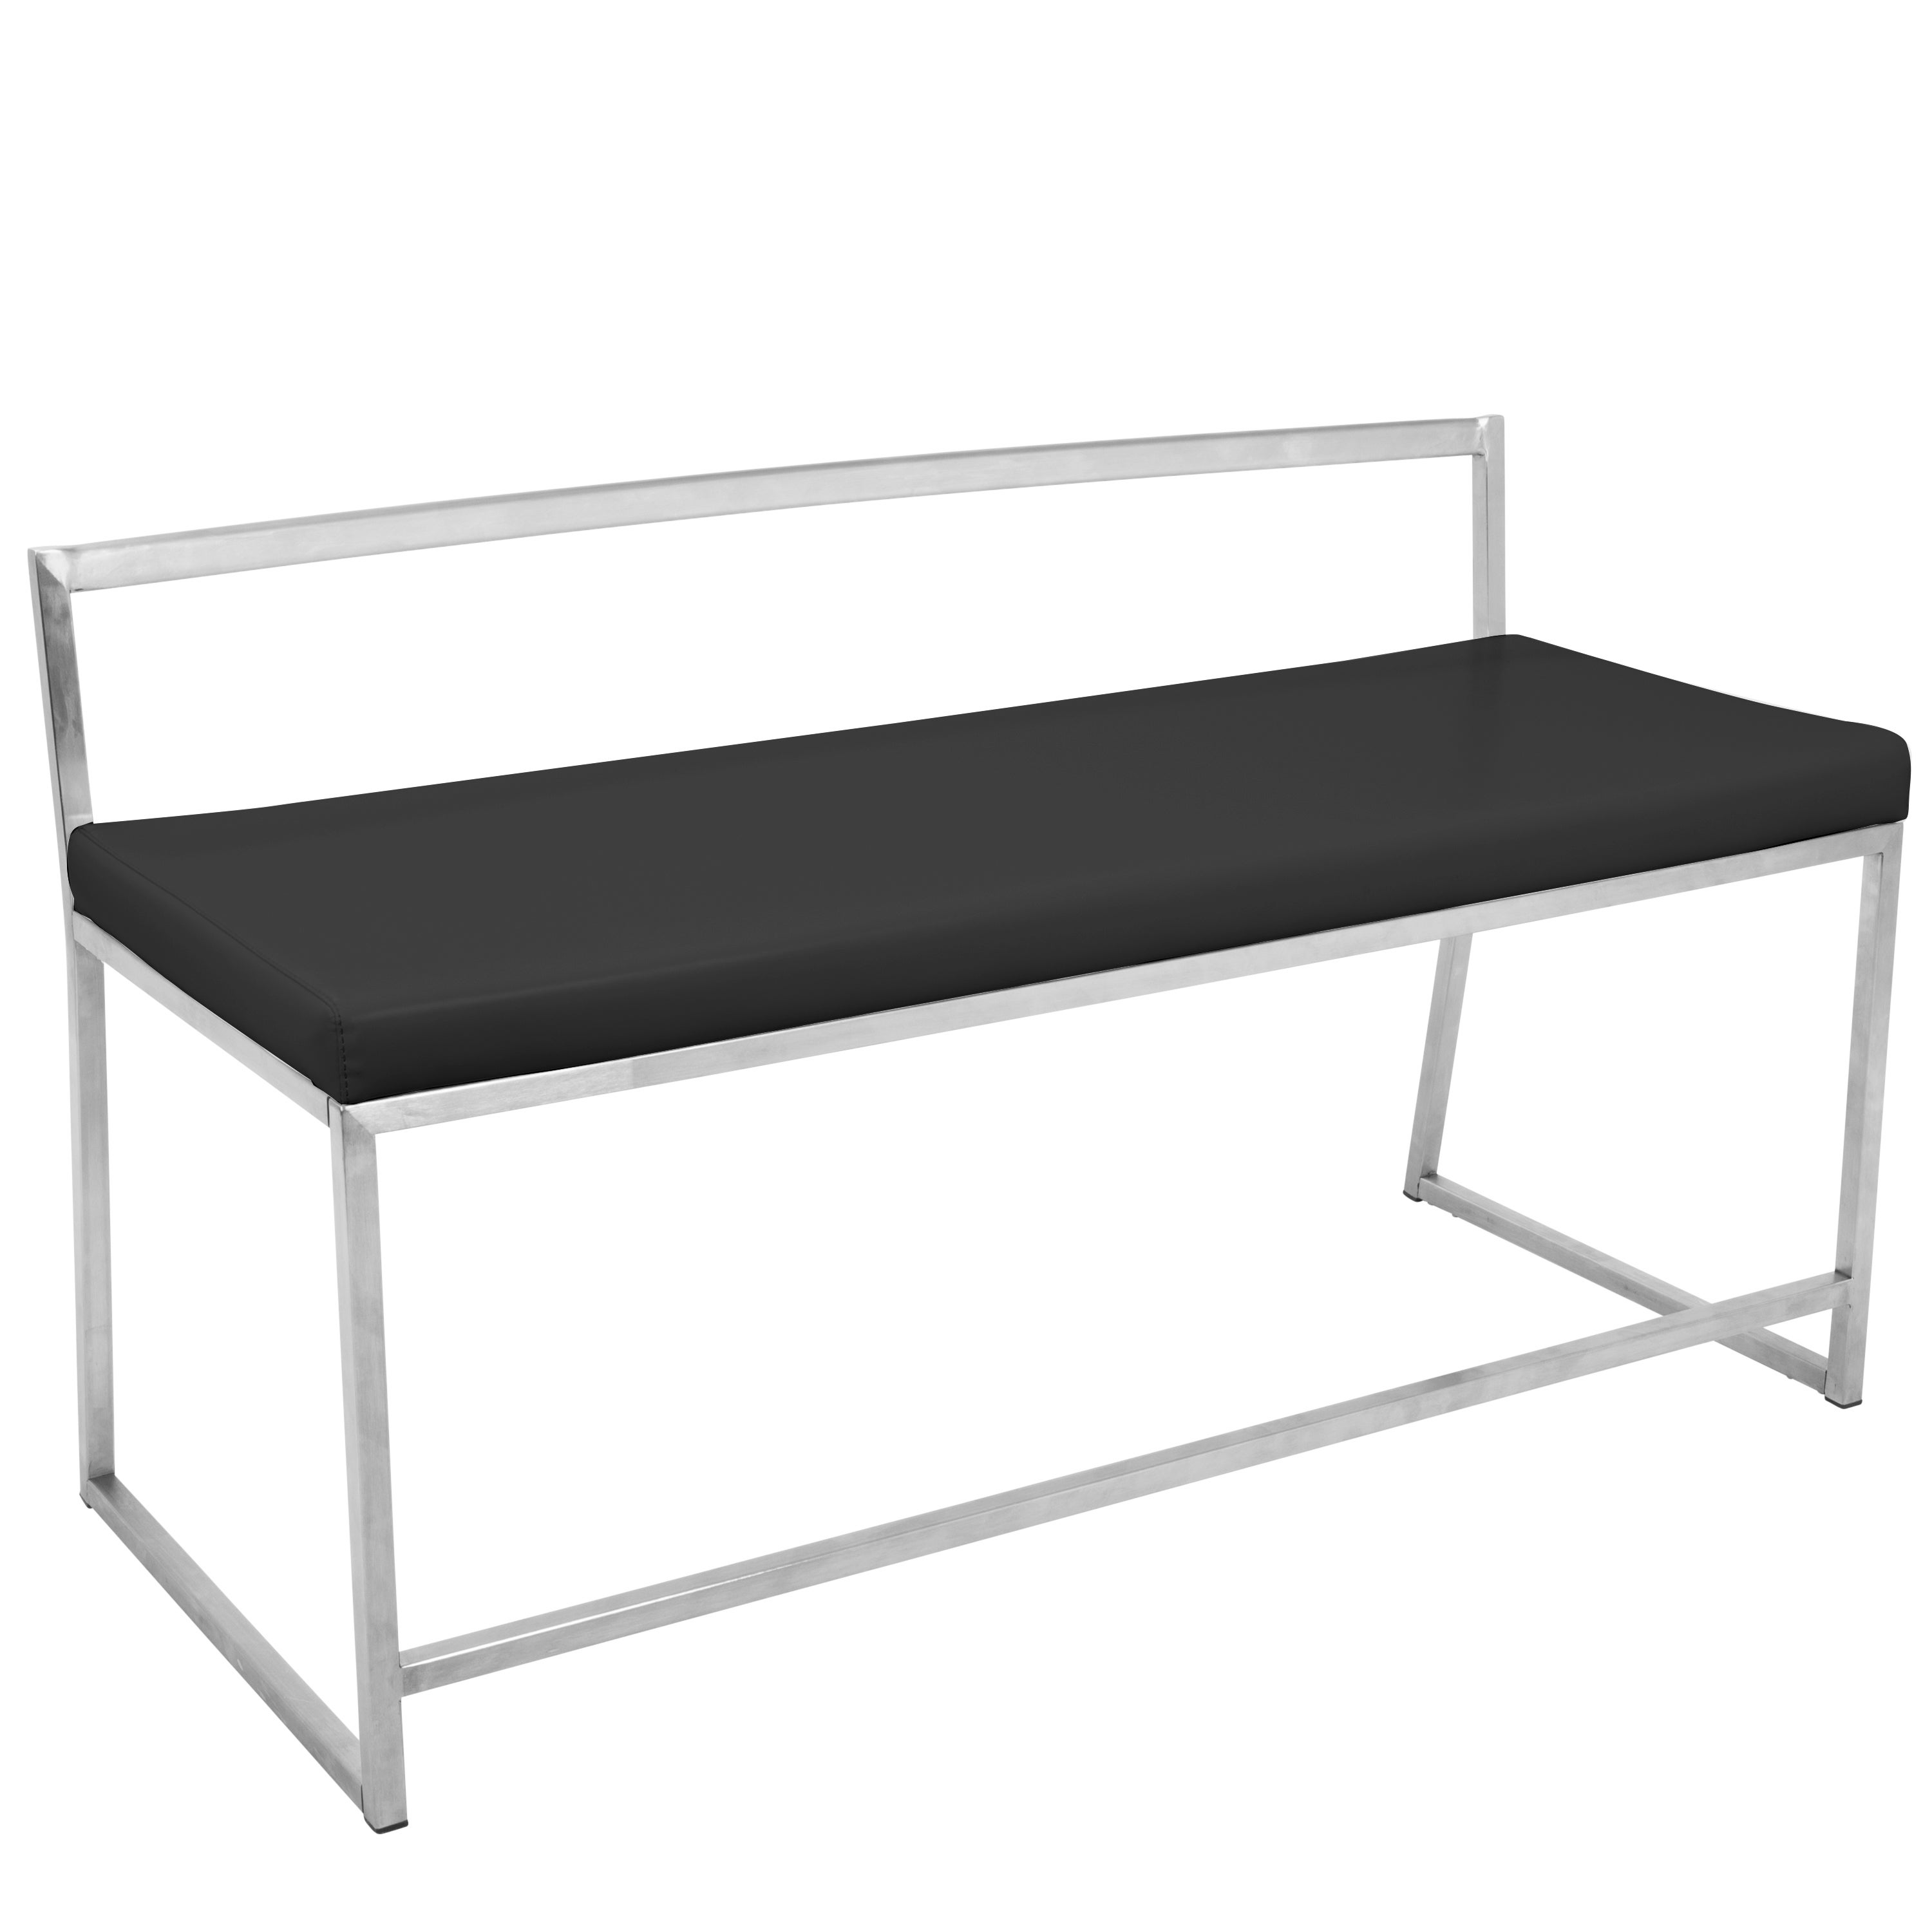 Captivating Shop Fuji Contemporary Dining / Entryway Bench In Faux Leather   On Sale    Free Shipping Today   Overstock.com   14230399